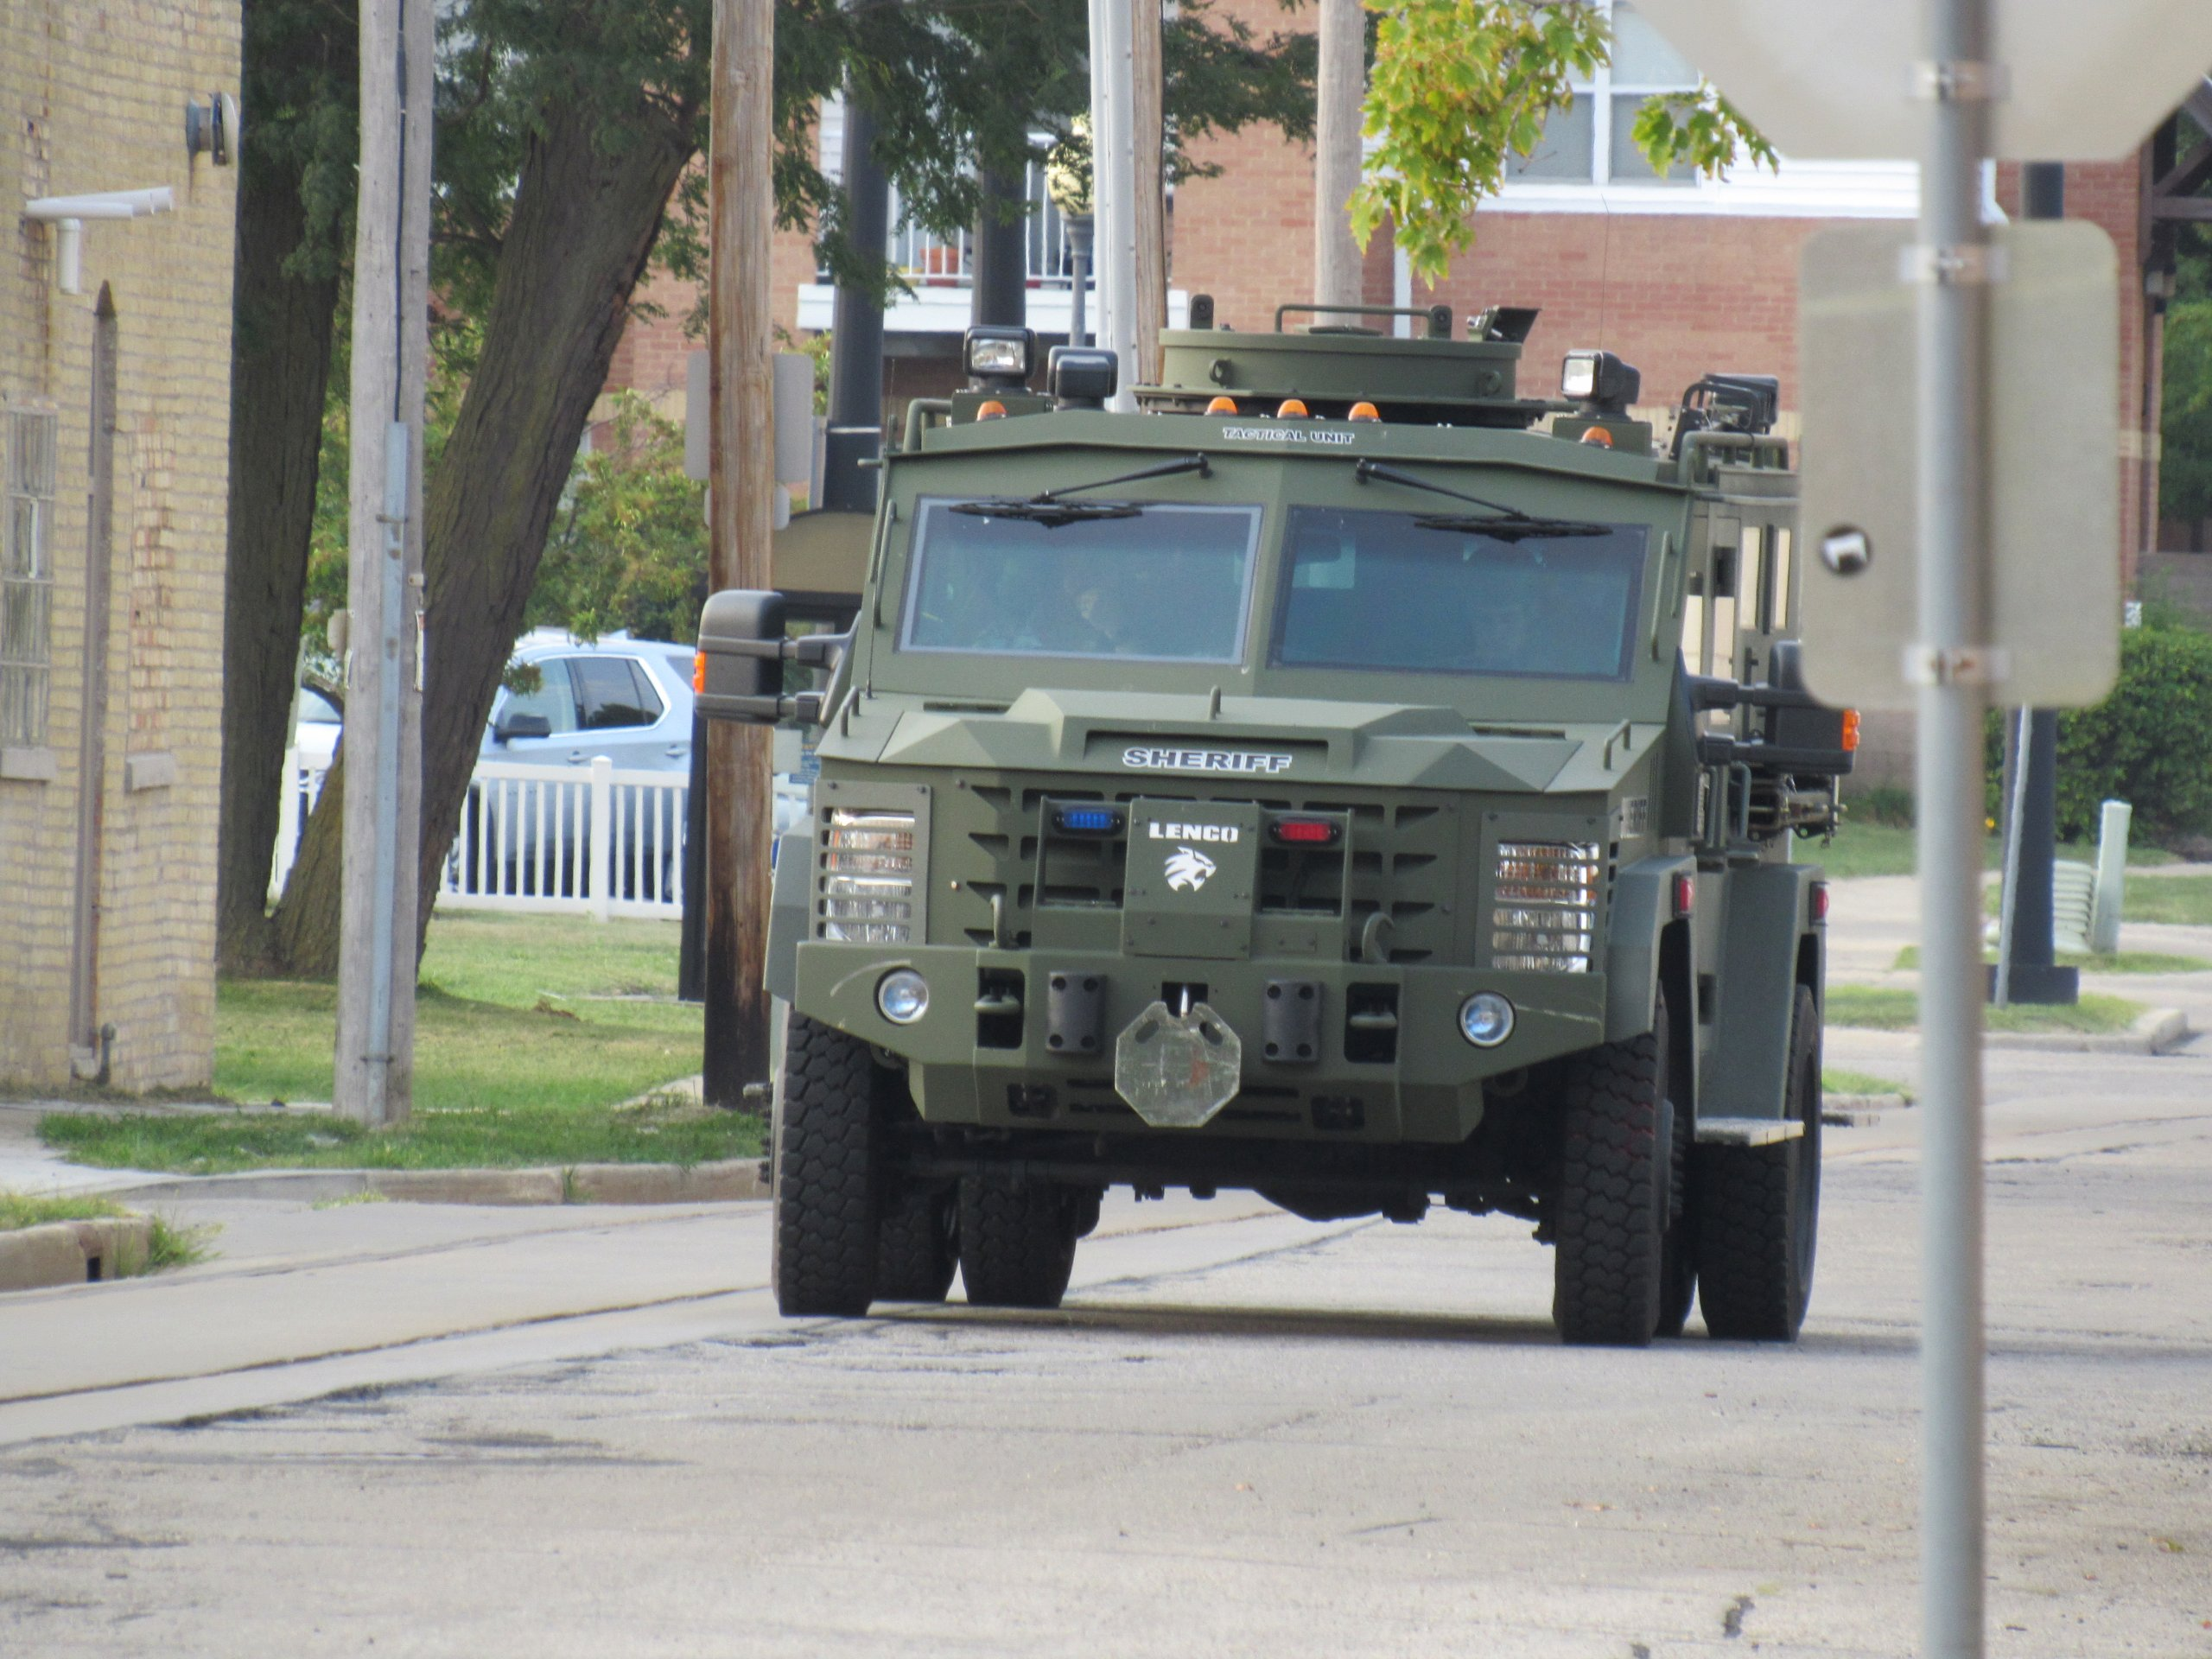 An armored police vehicle sits nearby where protesters gathered on August 24th, 2020. (Photo by Isiah Holmes)An armored police vehicle sits nearby where protesters gathered on August 24th, 2020. (Photo by Isiah Holmes)